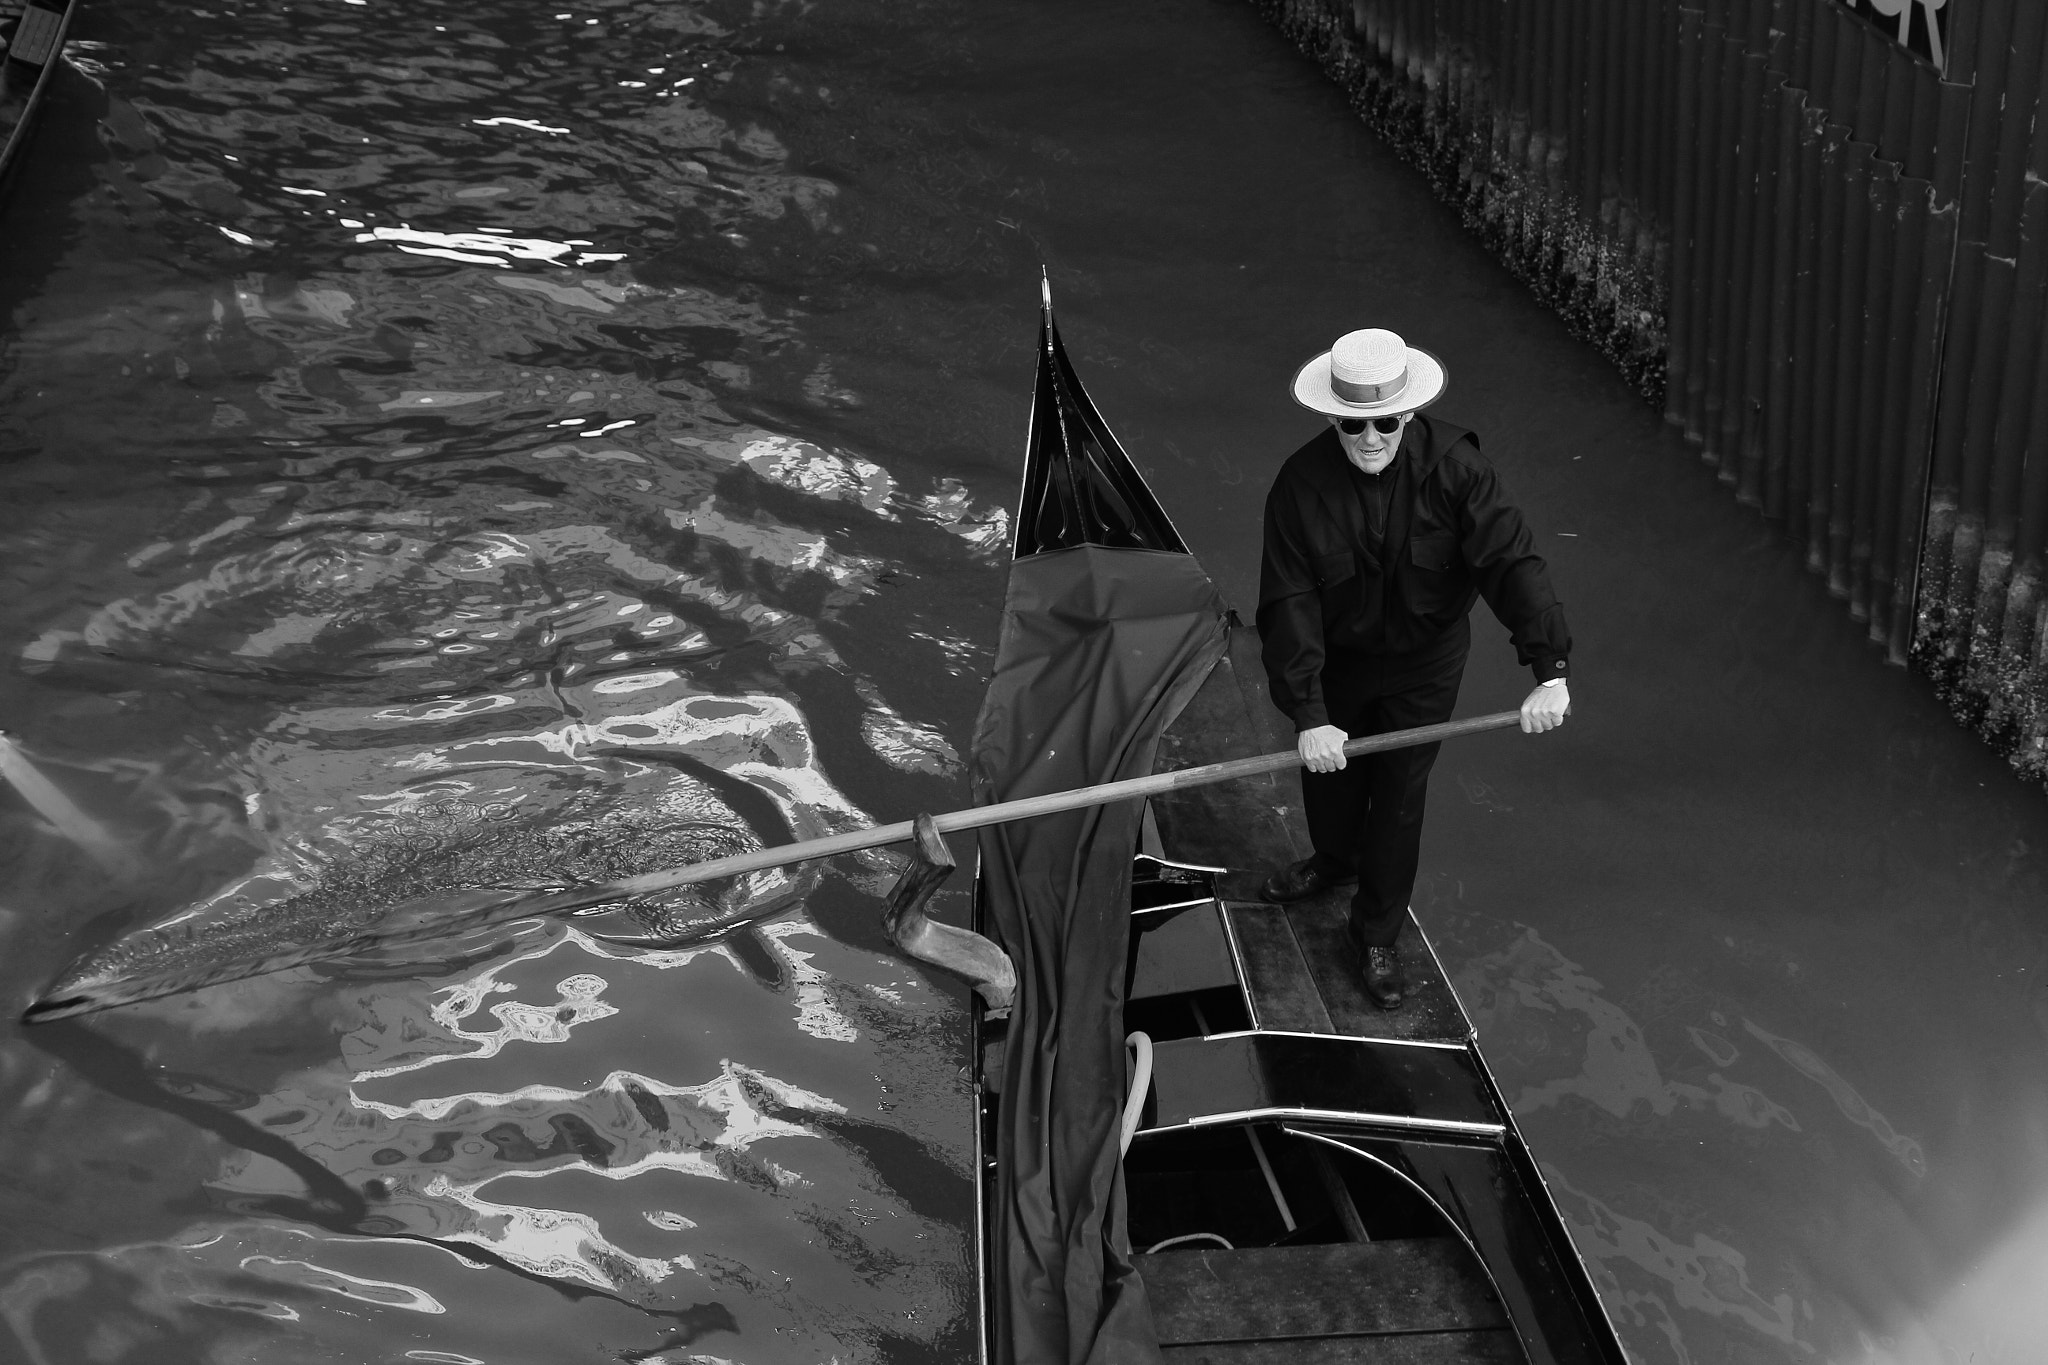 Photograph Gondolier in Venice, Italy by Jelena Beketic on 500px